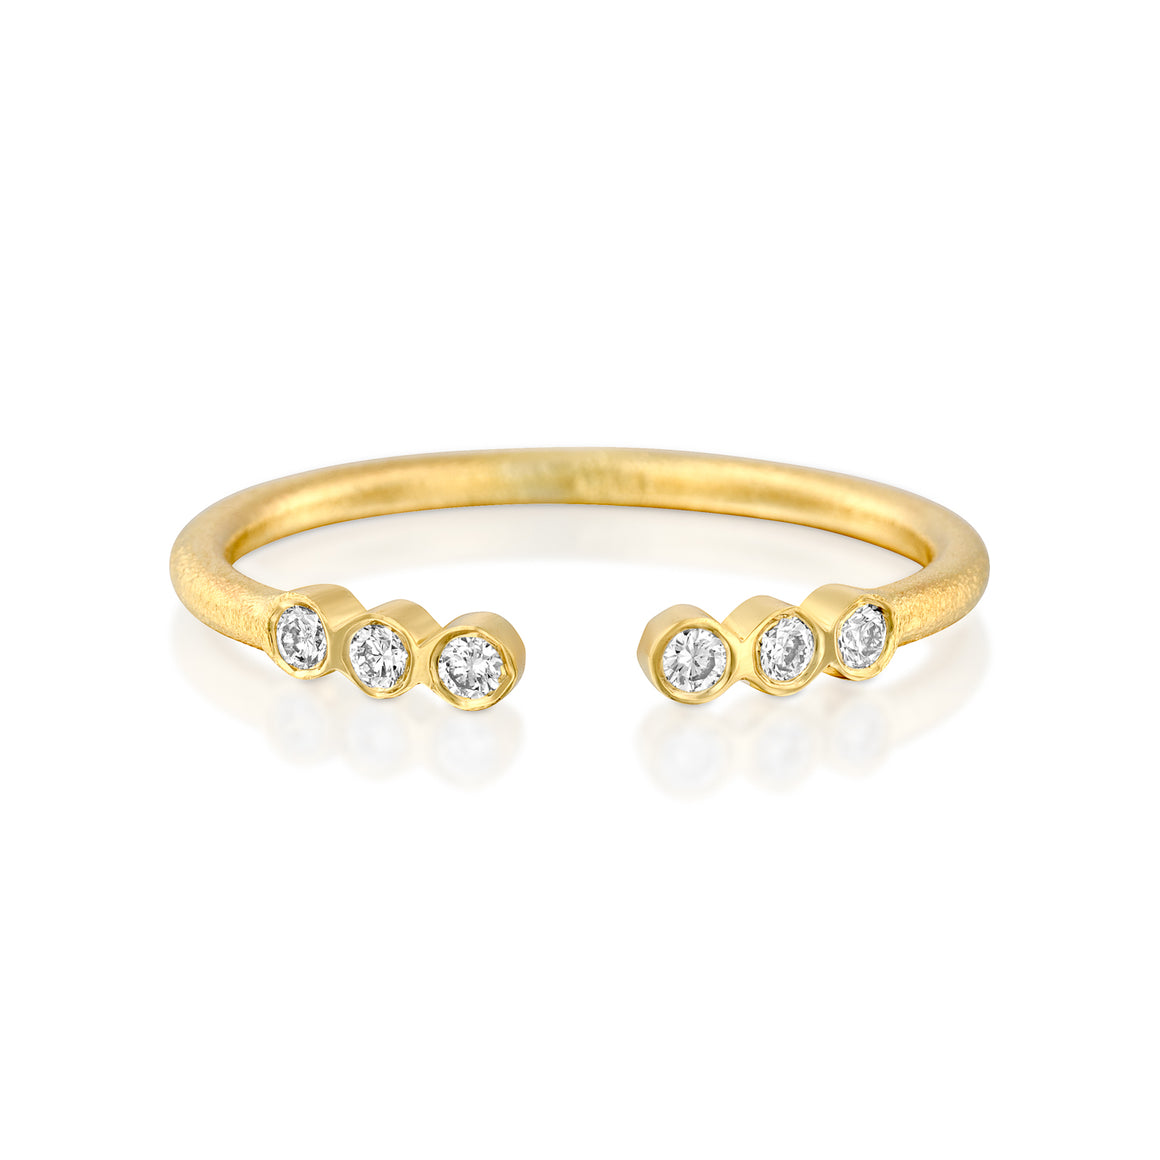 14ct Gold and Diamond Marika Ring. - Gemma Stone Jewellery